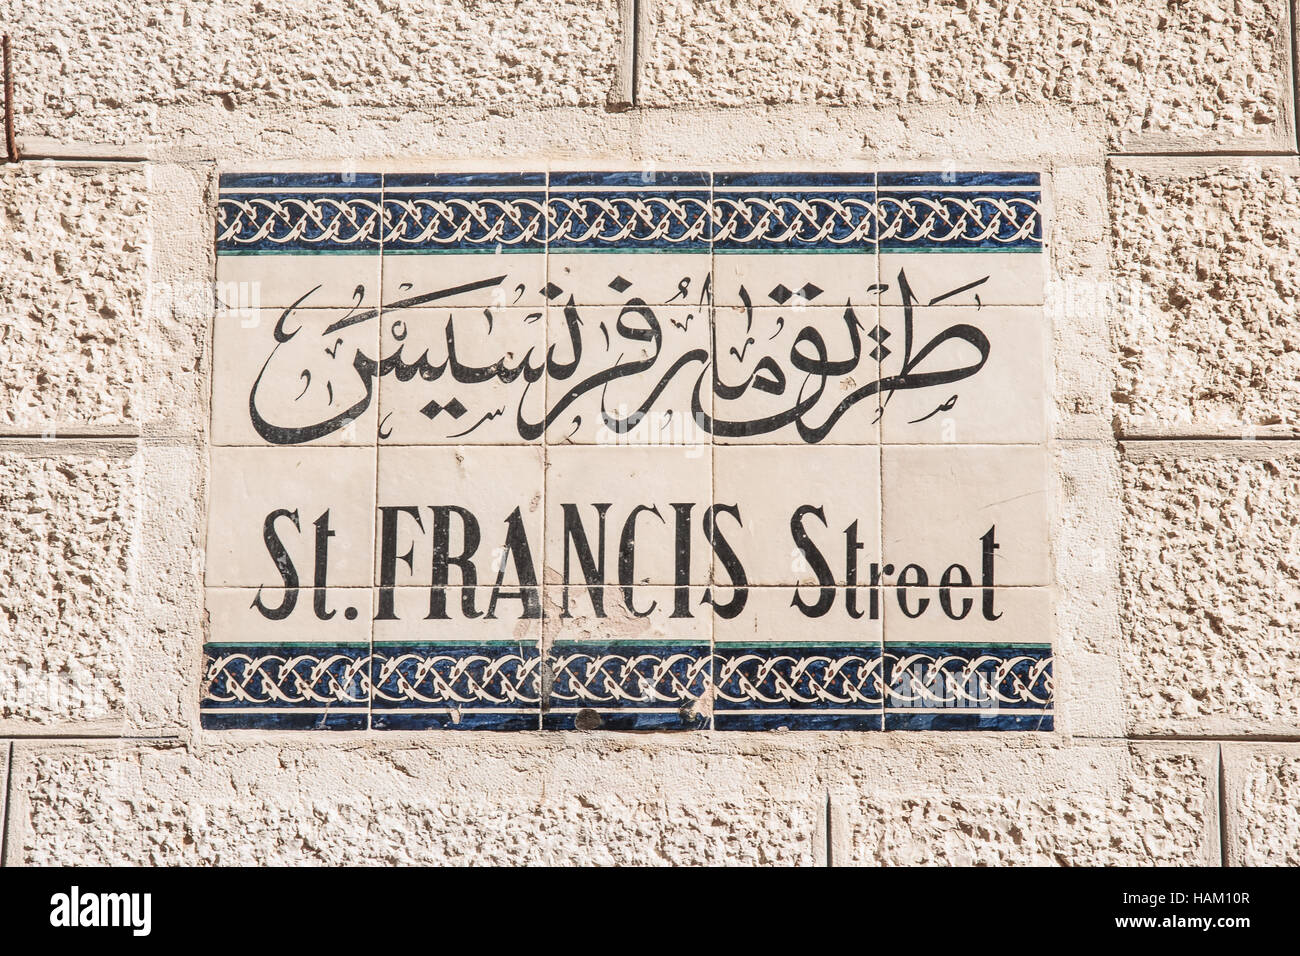 Street sign - St. Francis - in the old city of Jerusalem, Israel Stock Photo